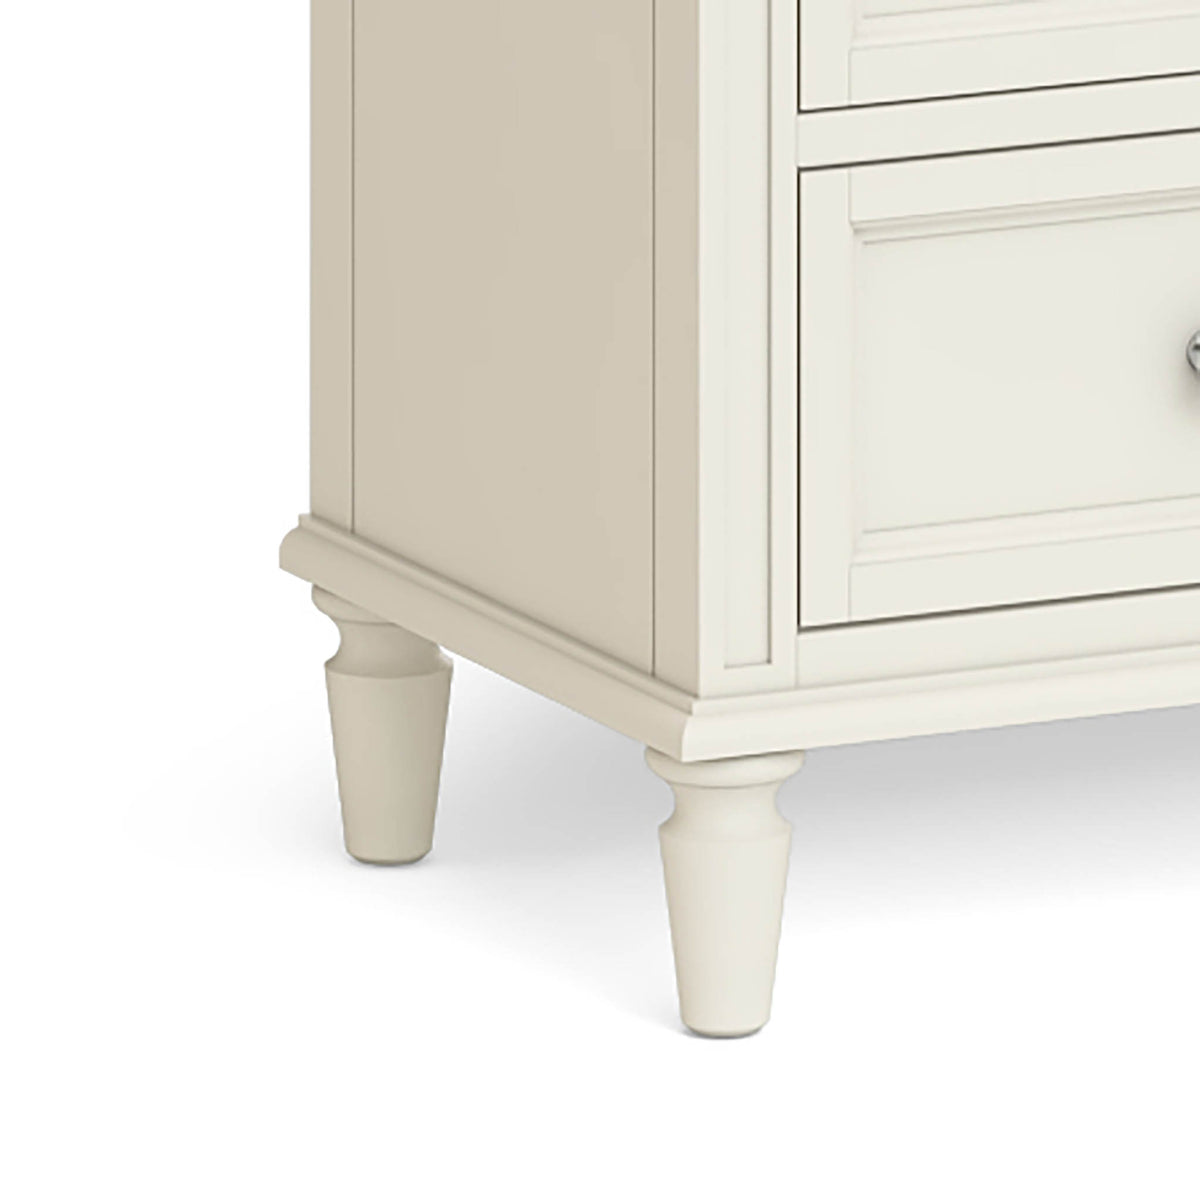 Mulsanne Cream 3 Over 4 Chest of Drawers - Close Up of Feet